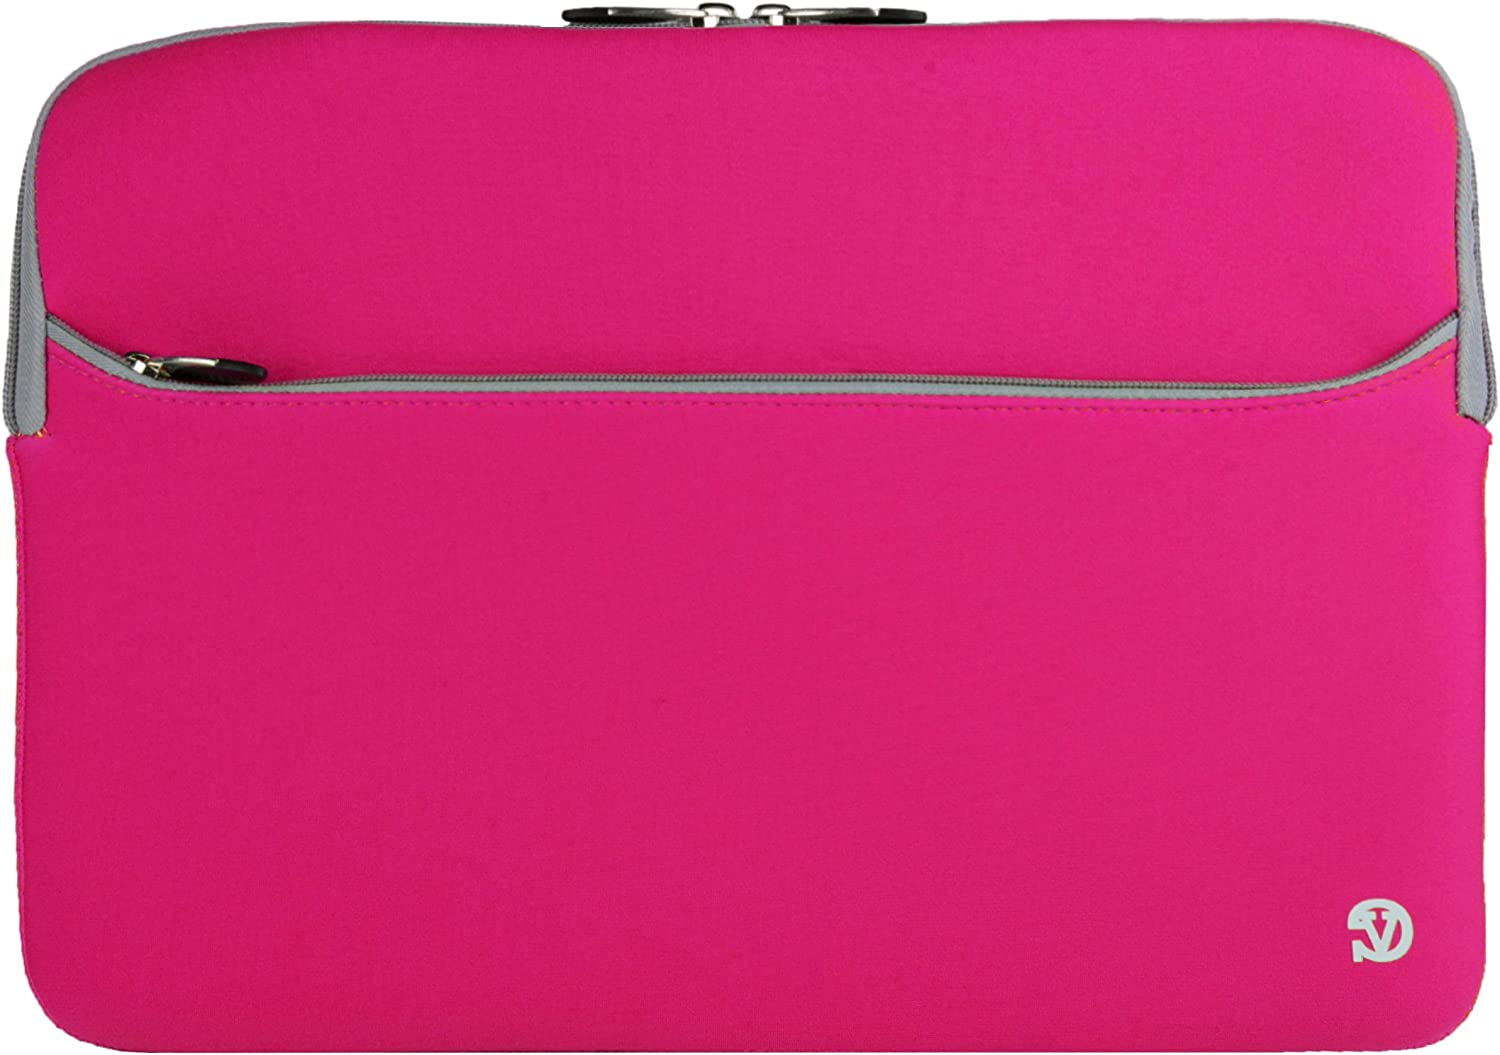 360 Protective Laptop Sleeve for 13 Inch Dell XPS, Dell Inspiron 11 3000